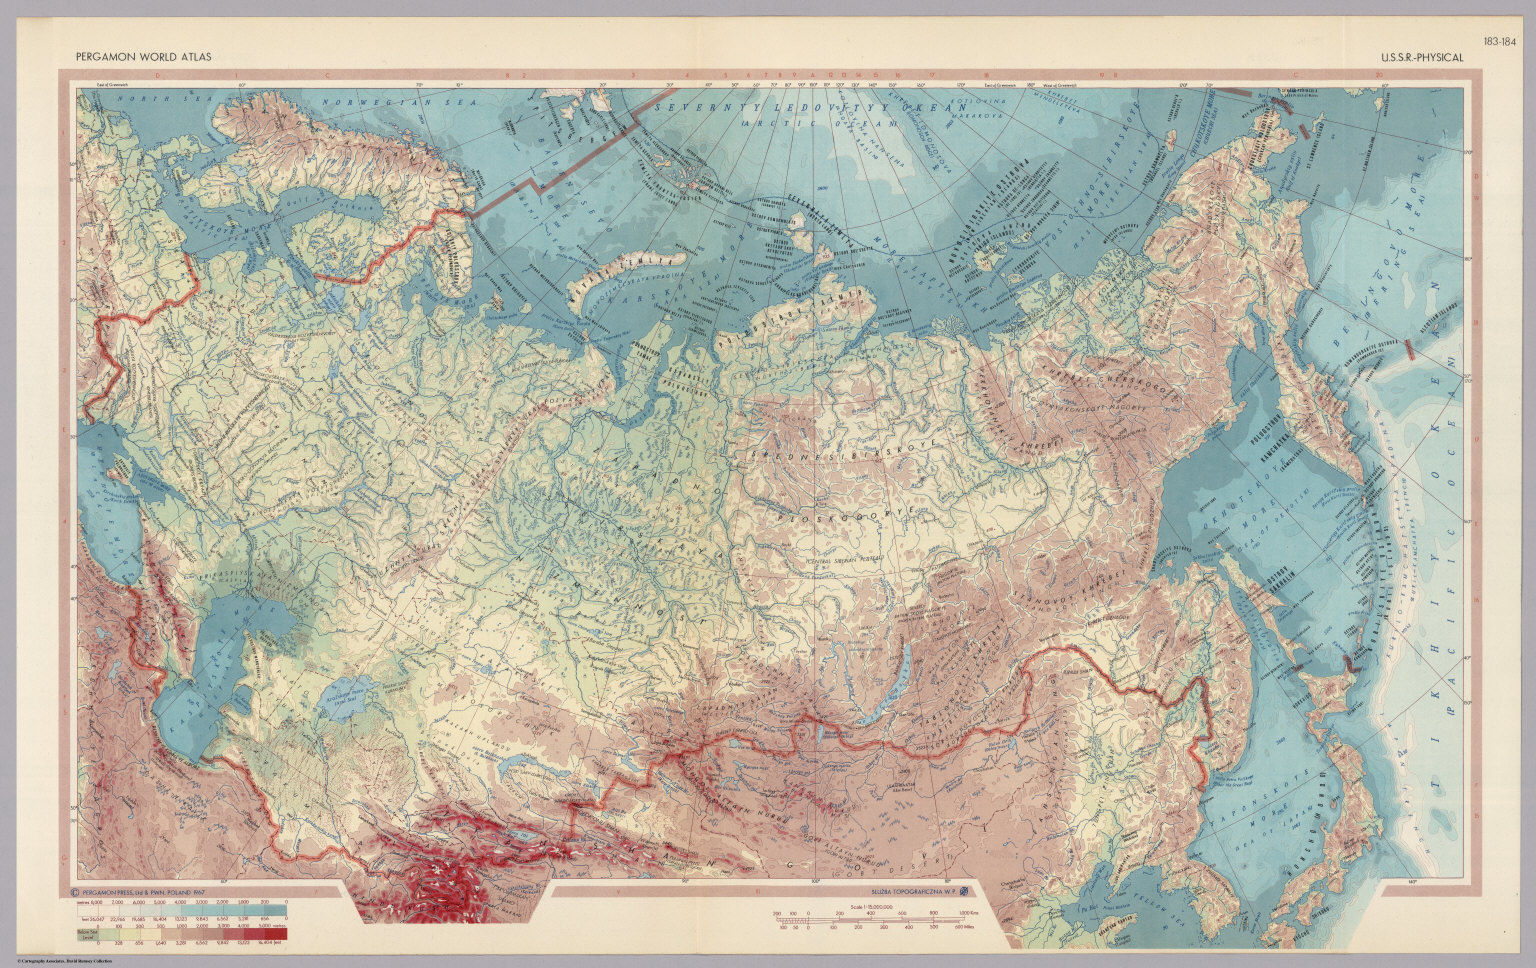 Ussr physical pergamon world atlas david rumsey ussr physical pergamon world atlas gumiabroncs Choice Image